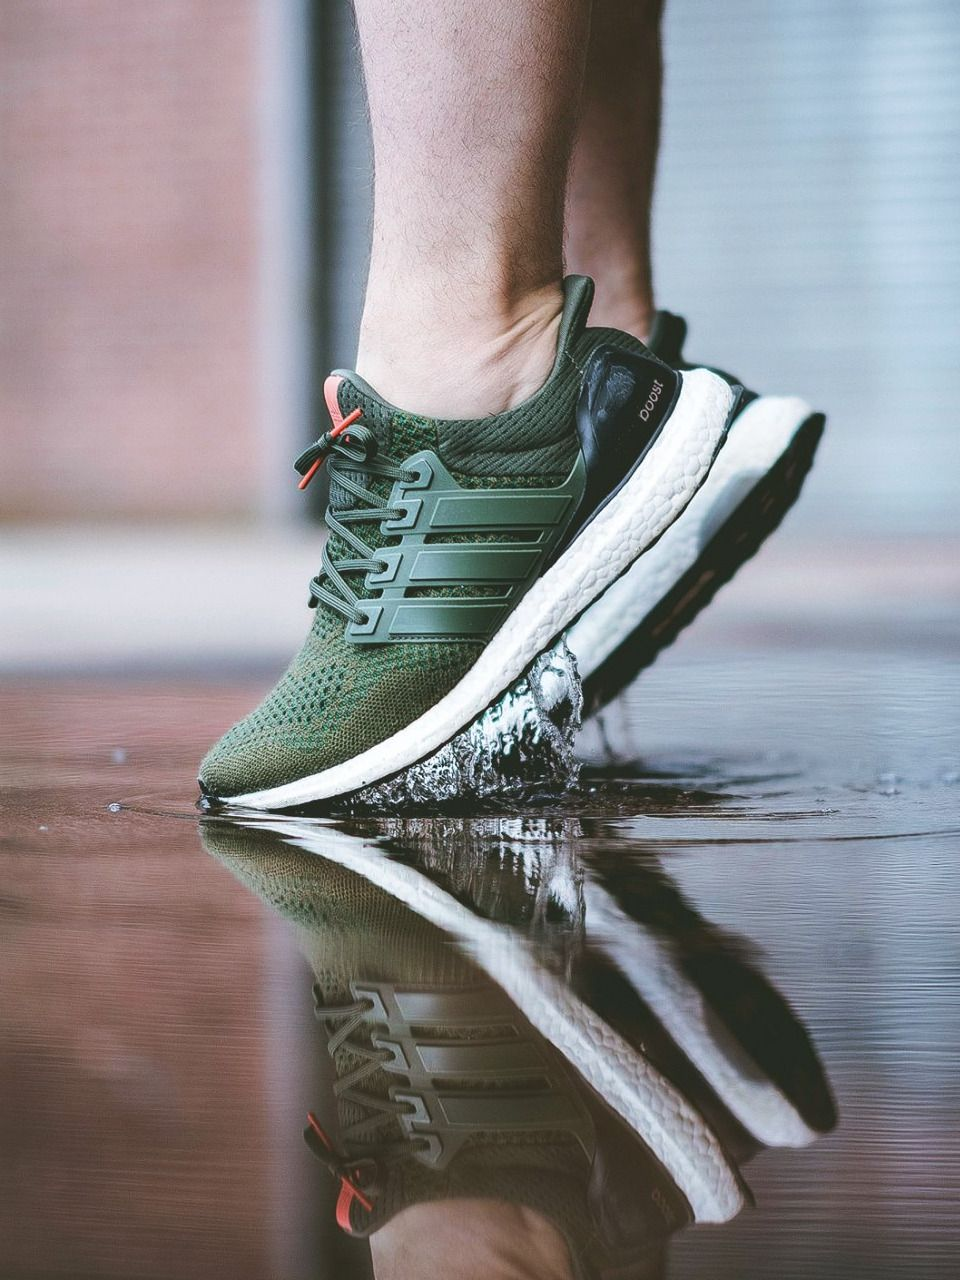 Adidas Ultra Boost 1.0 - Base Green - 2016 (by thomas 1986)  24bab3fa9